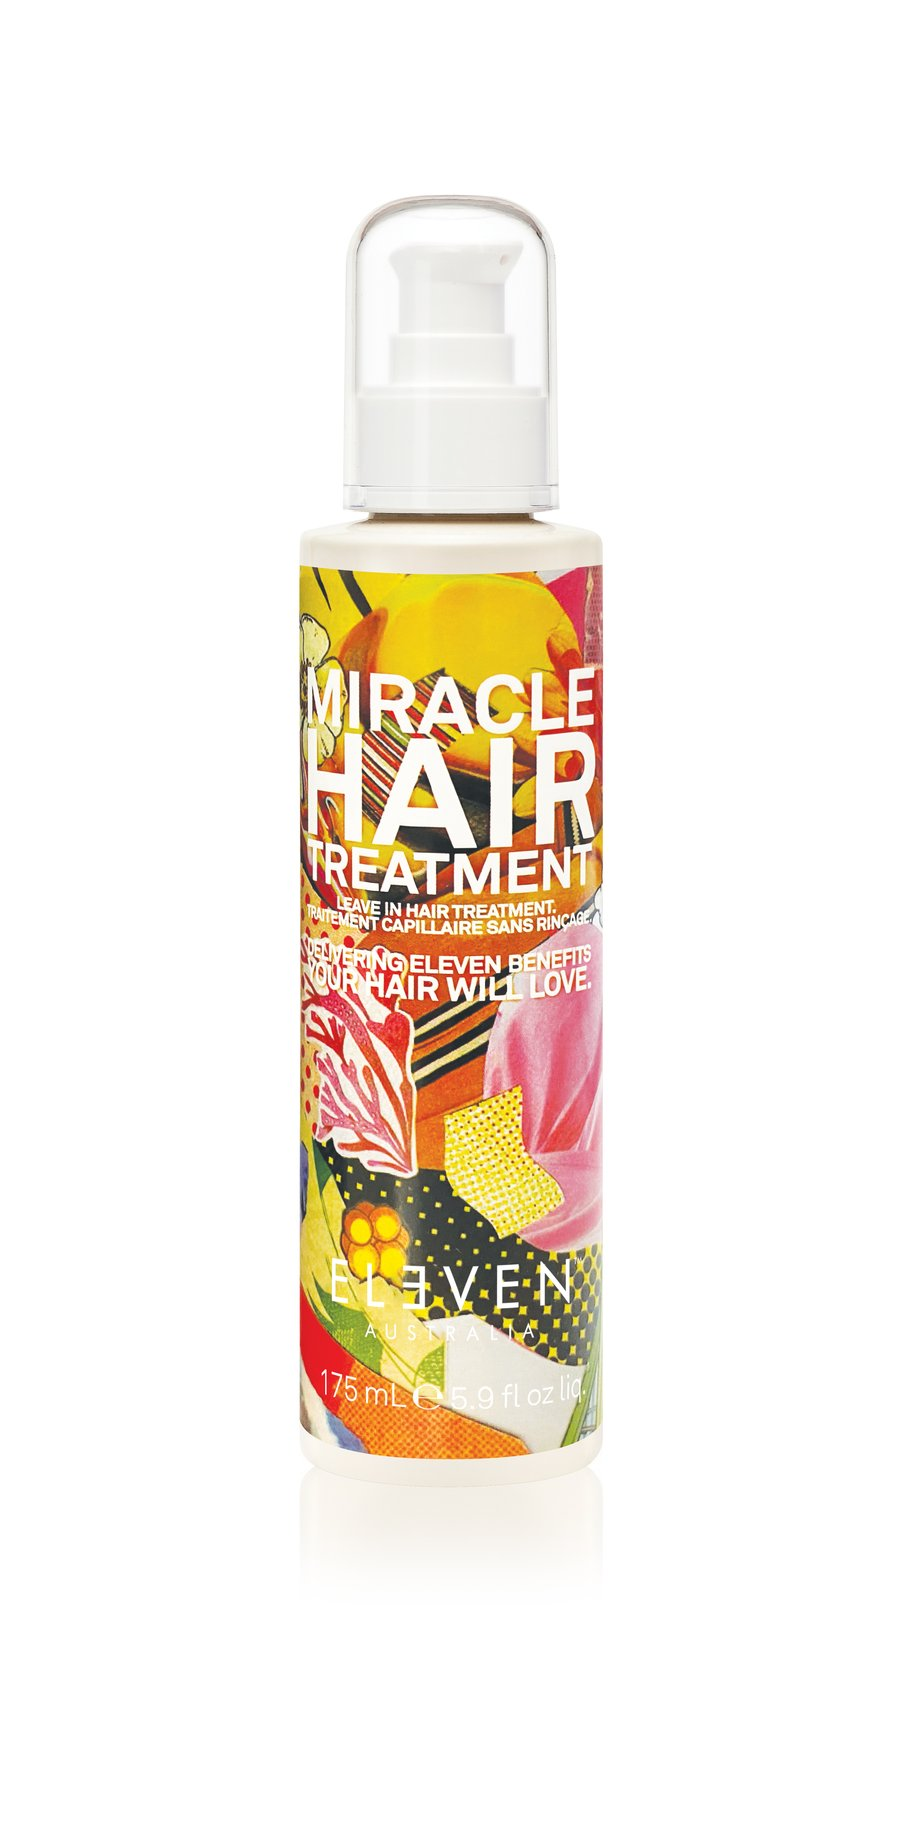 Limited edition miracle hair treatment